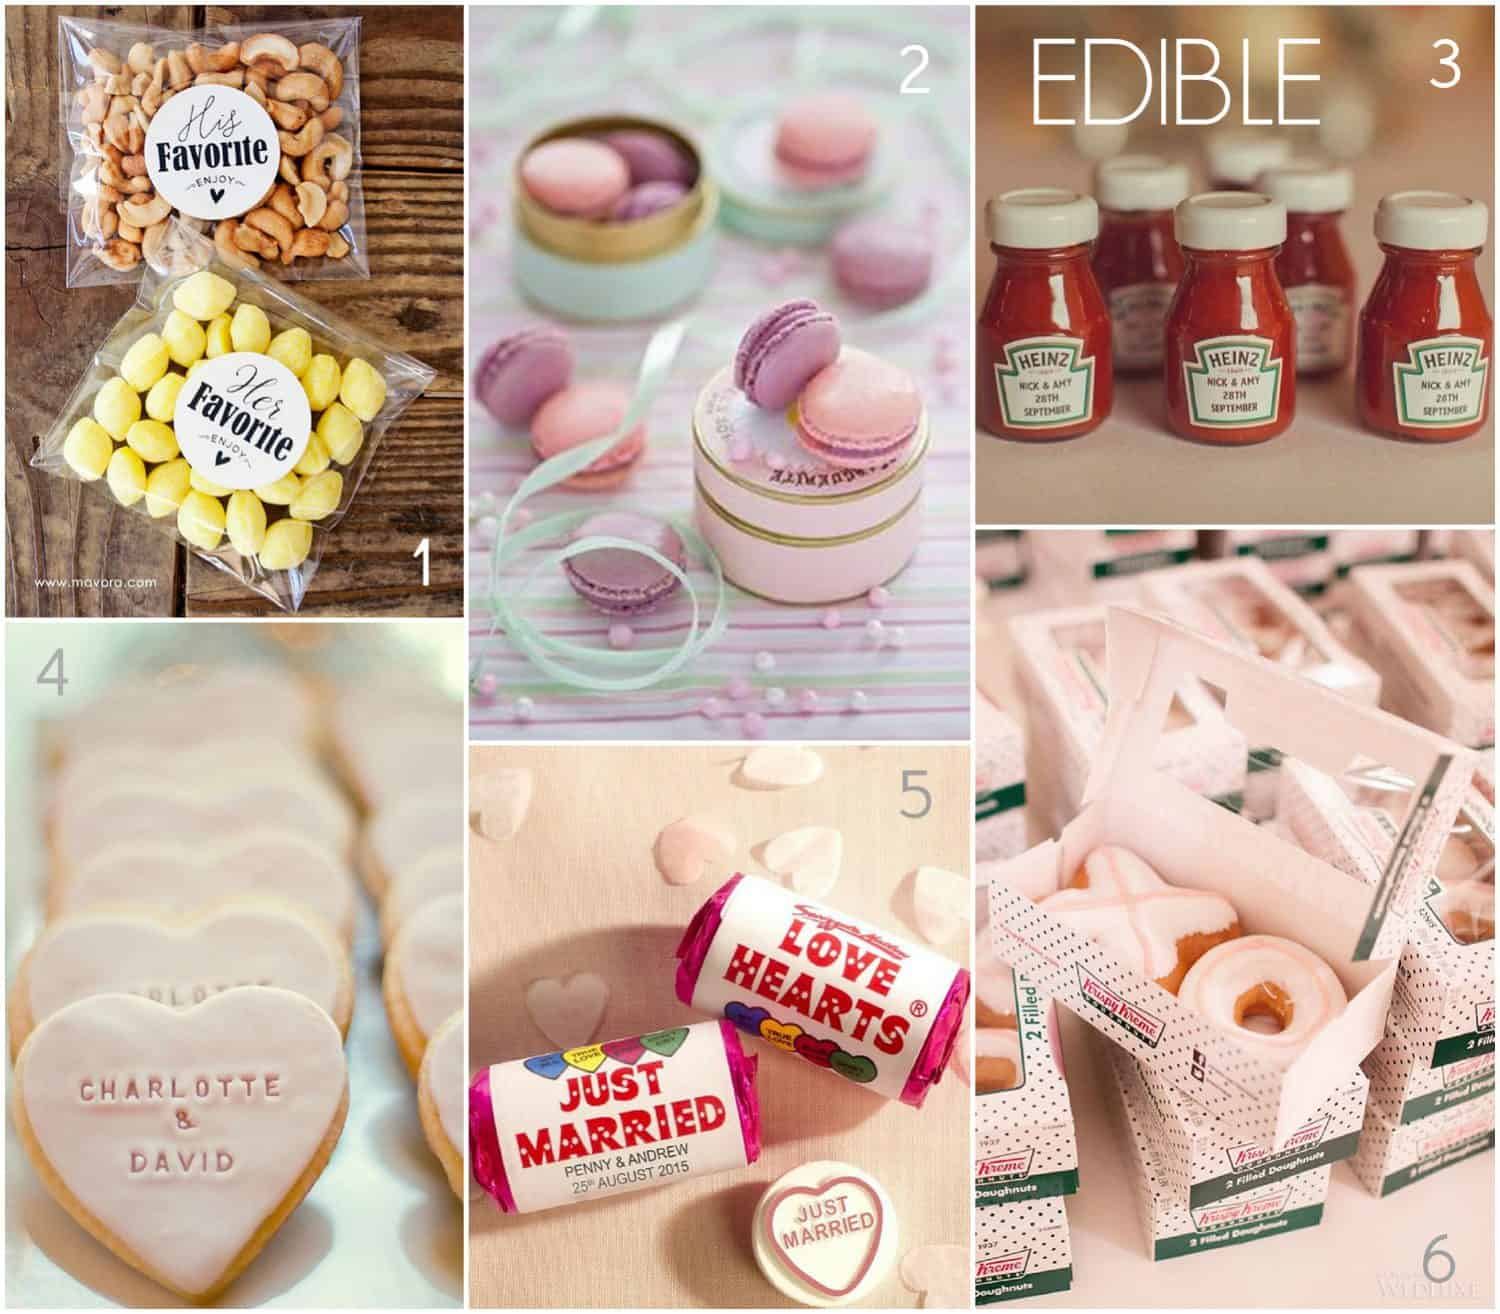 Edible wedding favours, wedding traditions, favours you can eat